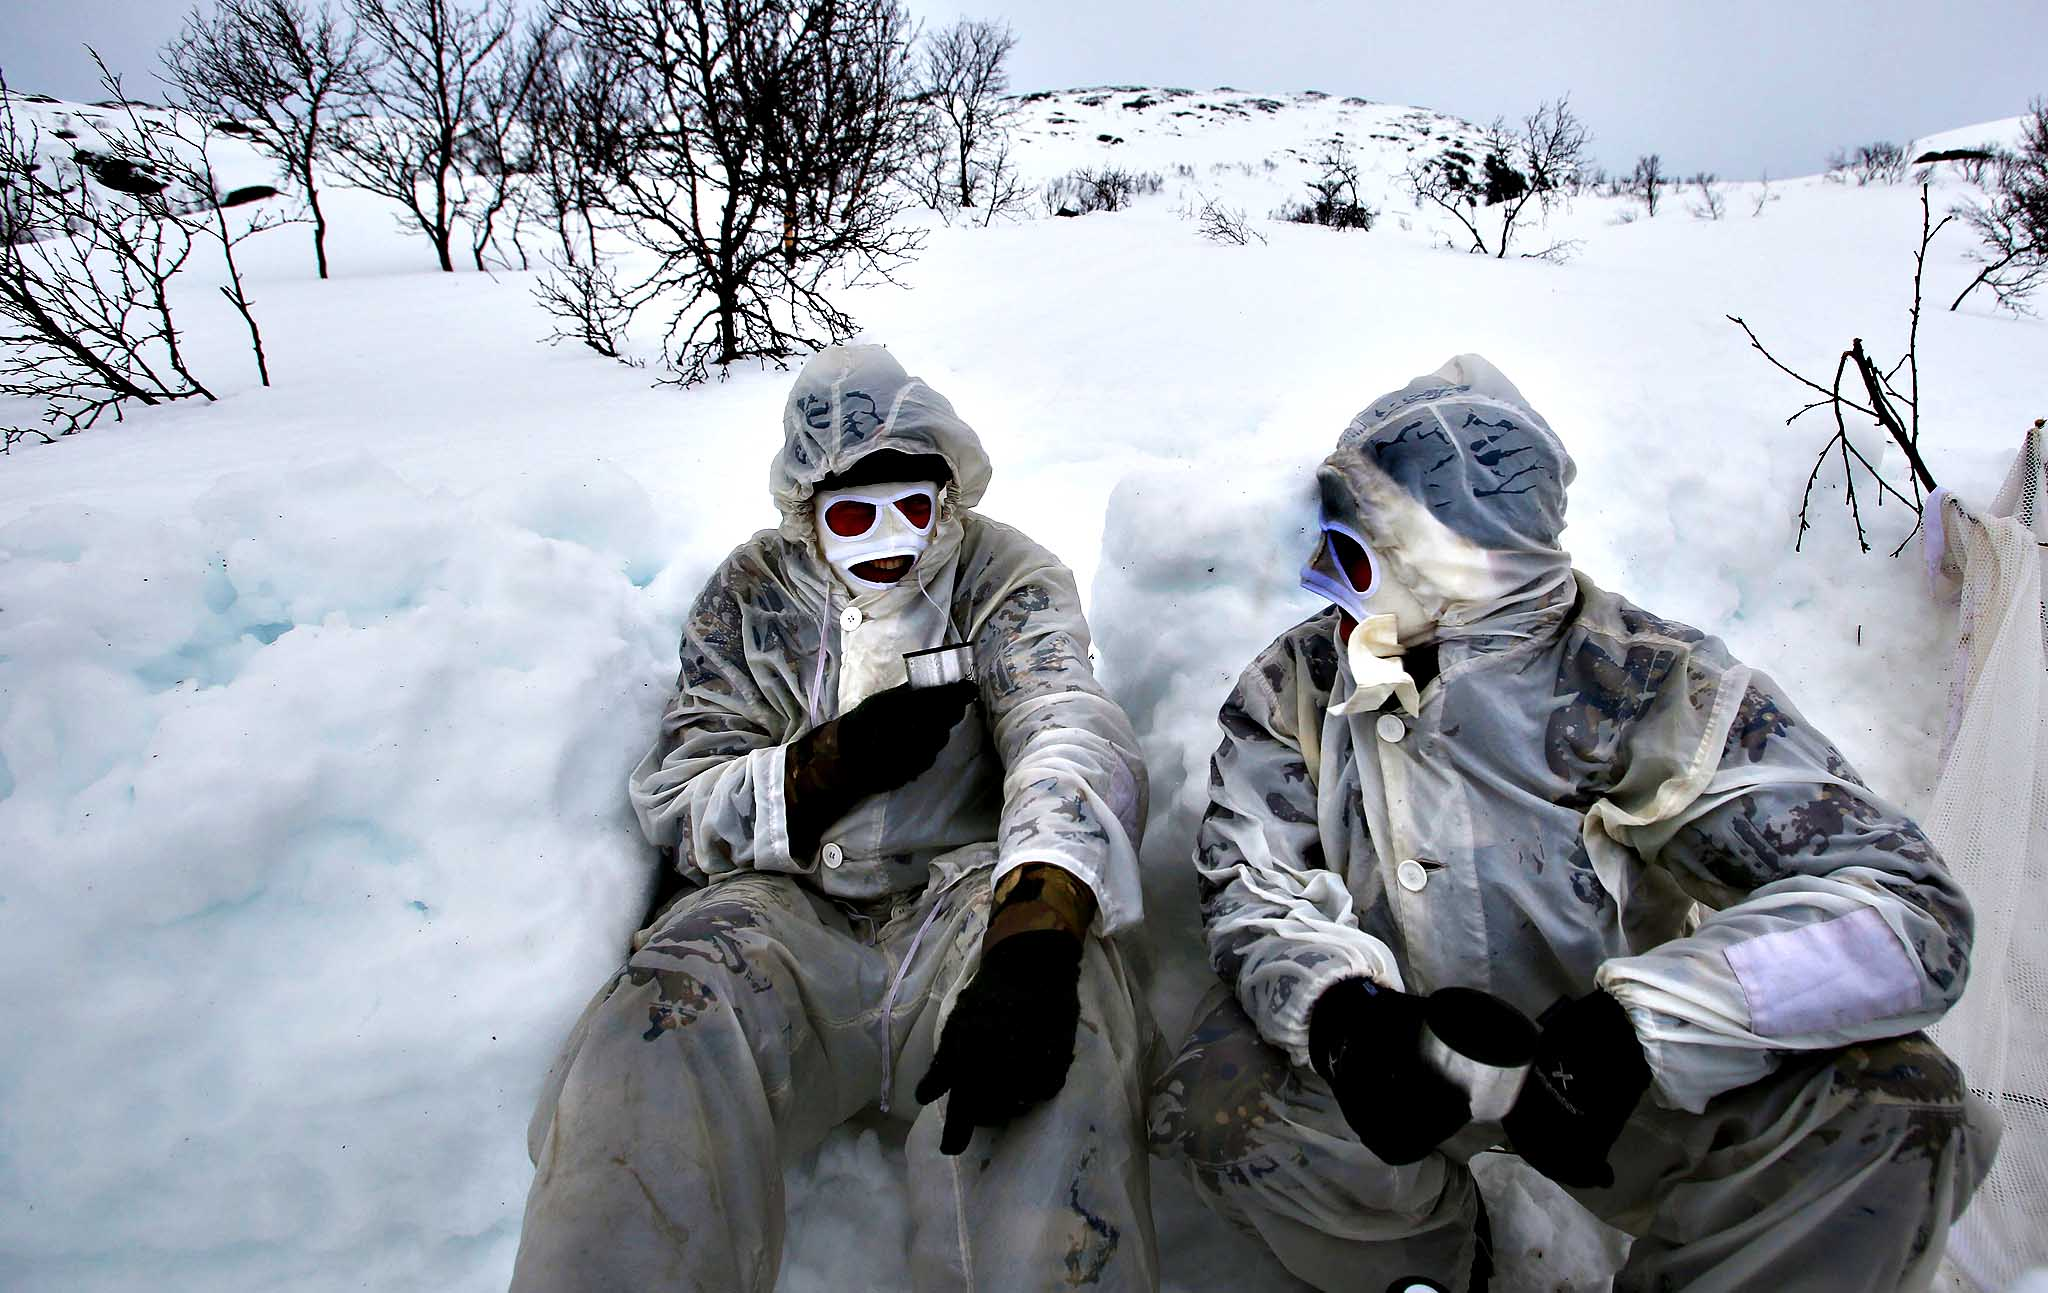 Marine reservists James Mullard (right) from Rosyth Scotland and Ed Dutton (left) from Plymouth taking a rest during a ski patrol in the hills of Harstad, Northern Norway, in the Arctic Circle as part of their Cold Weather Survival training which lasts for two weeks. PRESS ASSOCIATION Photo. Picture date: Monday March 17, 2014.